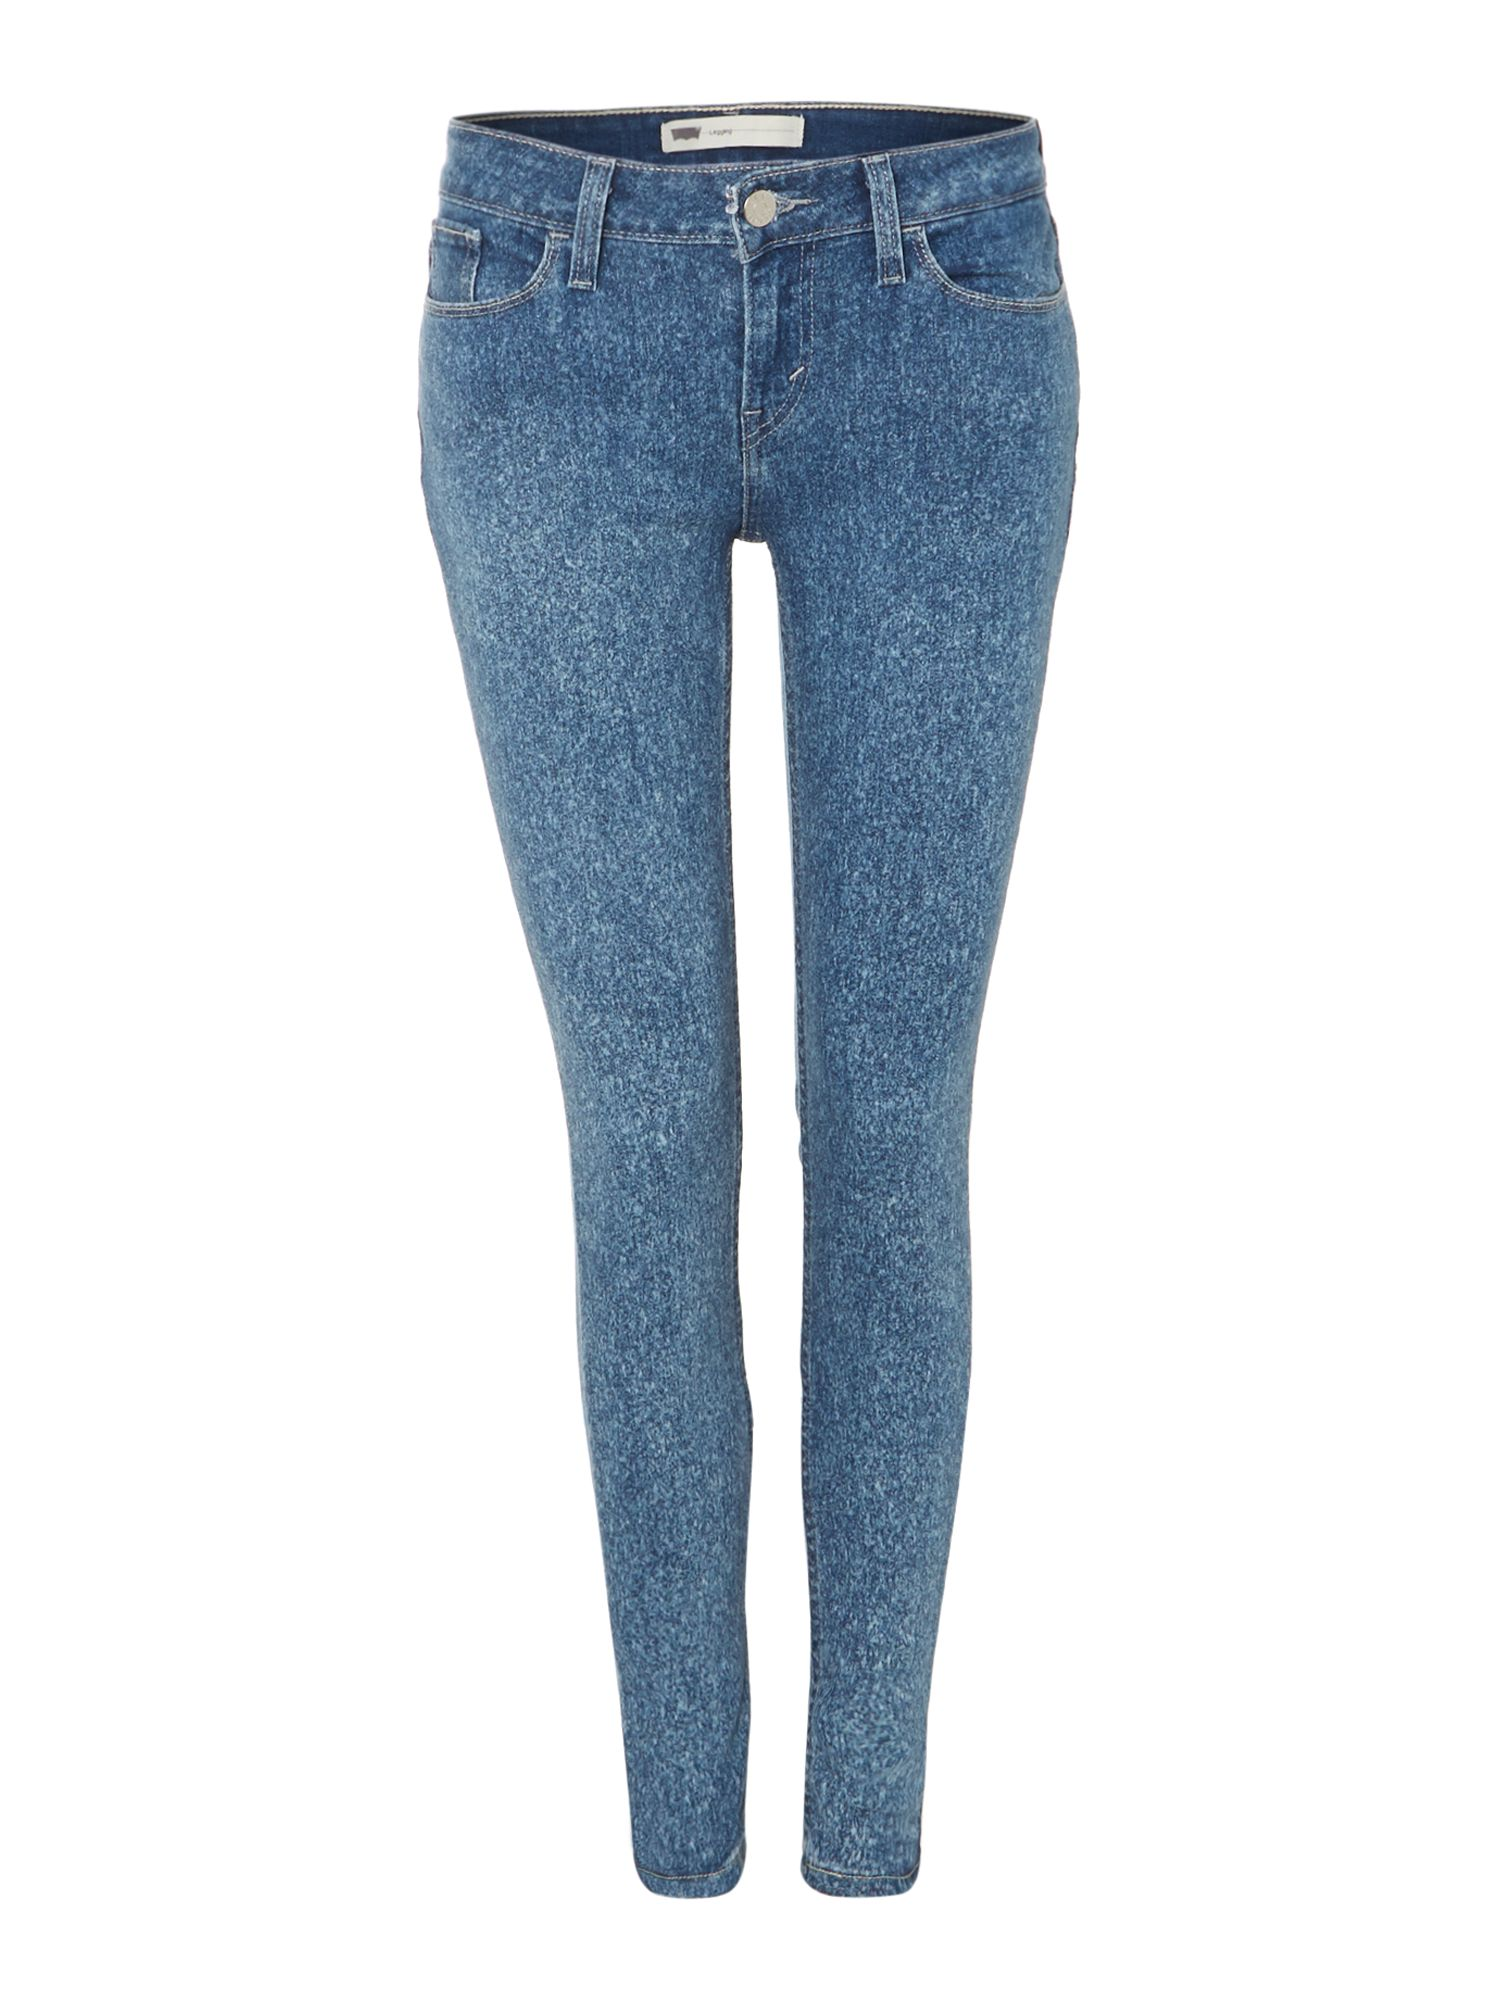 535 Legging jeans in drifter